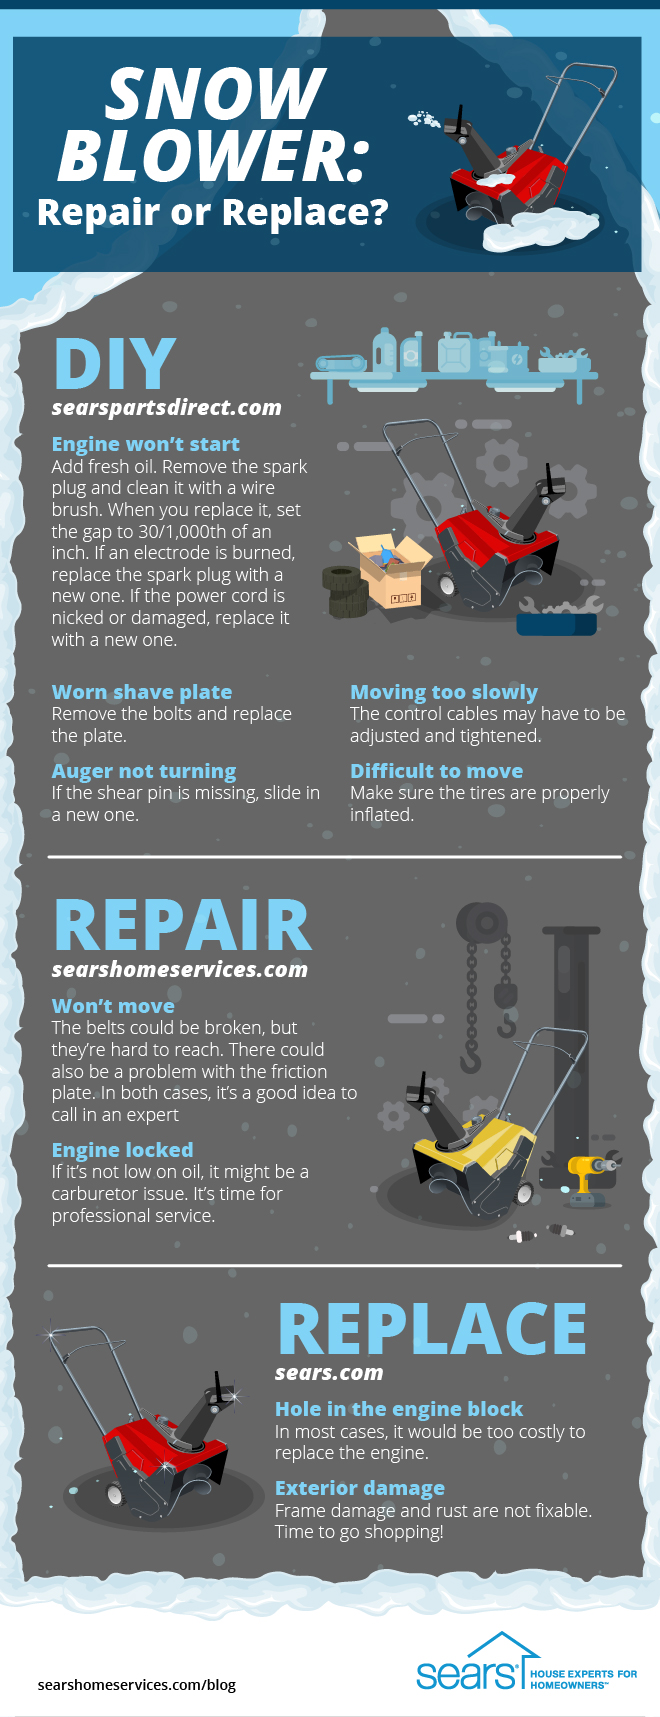 repair or replace your snow blower